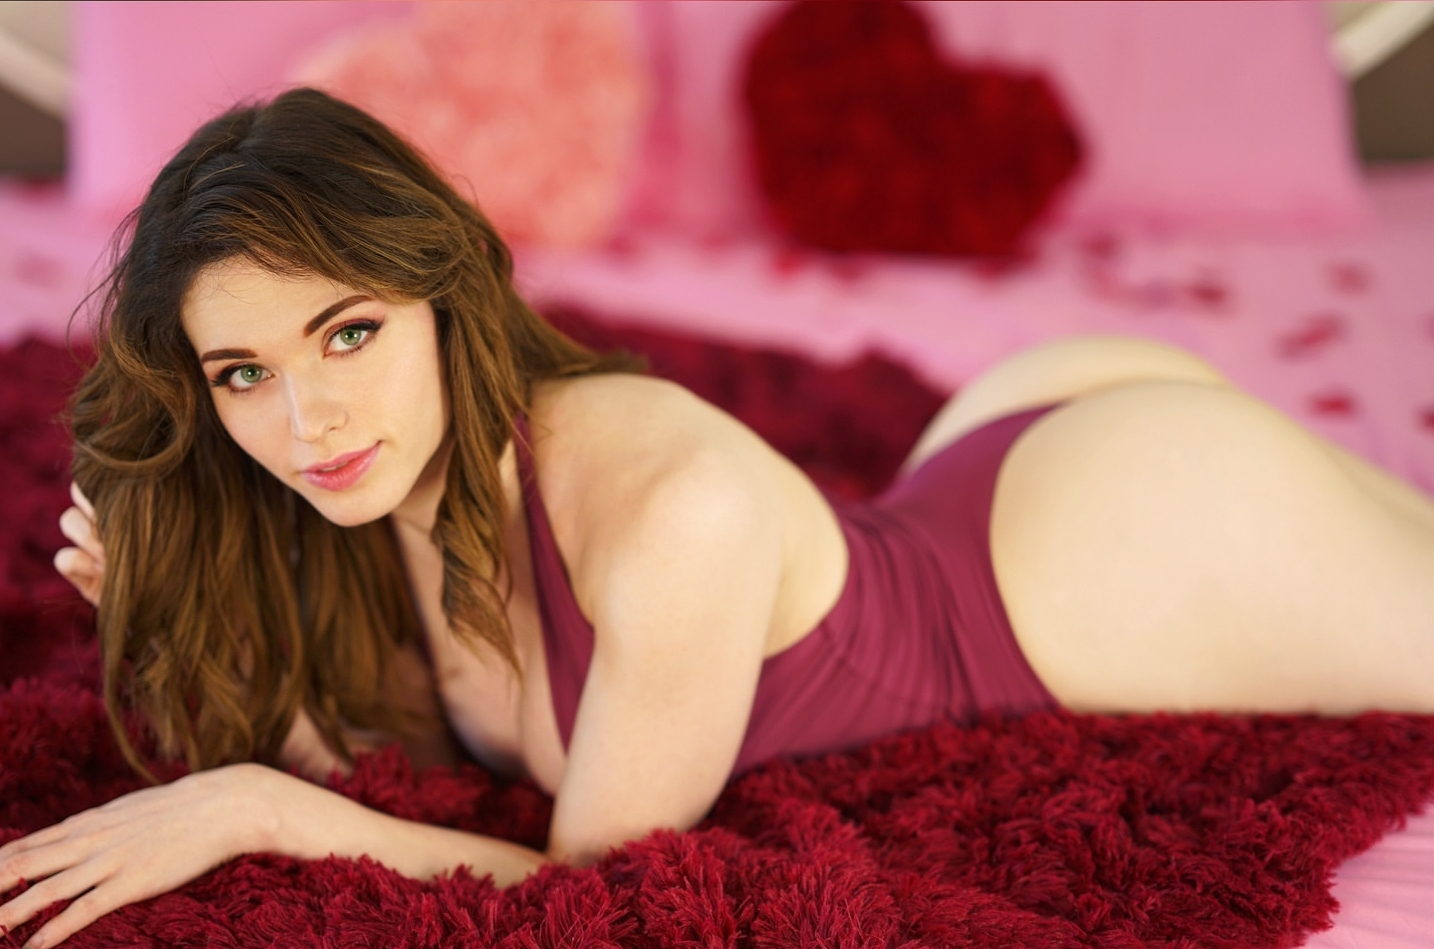 Amouranth liar Amouranth's